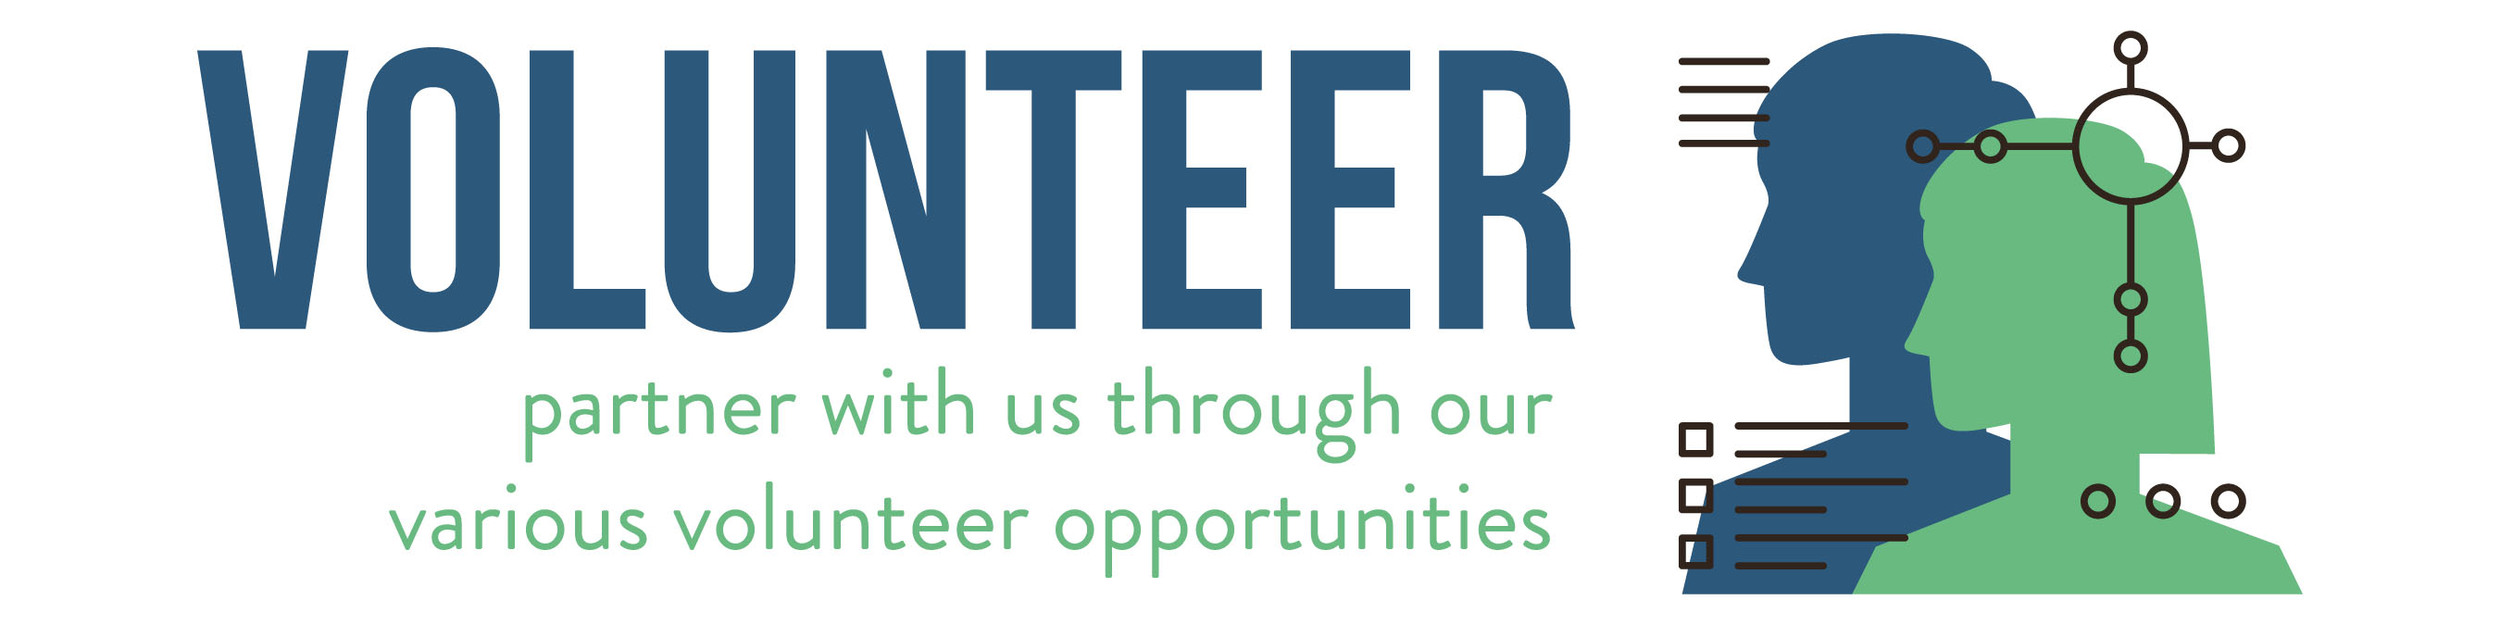 Volunteer Header